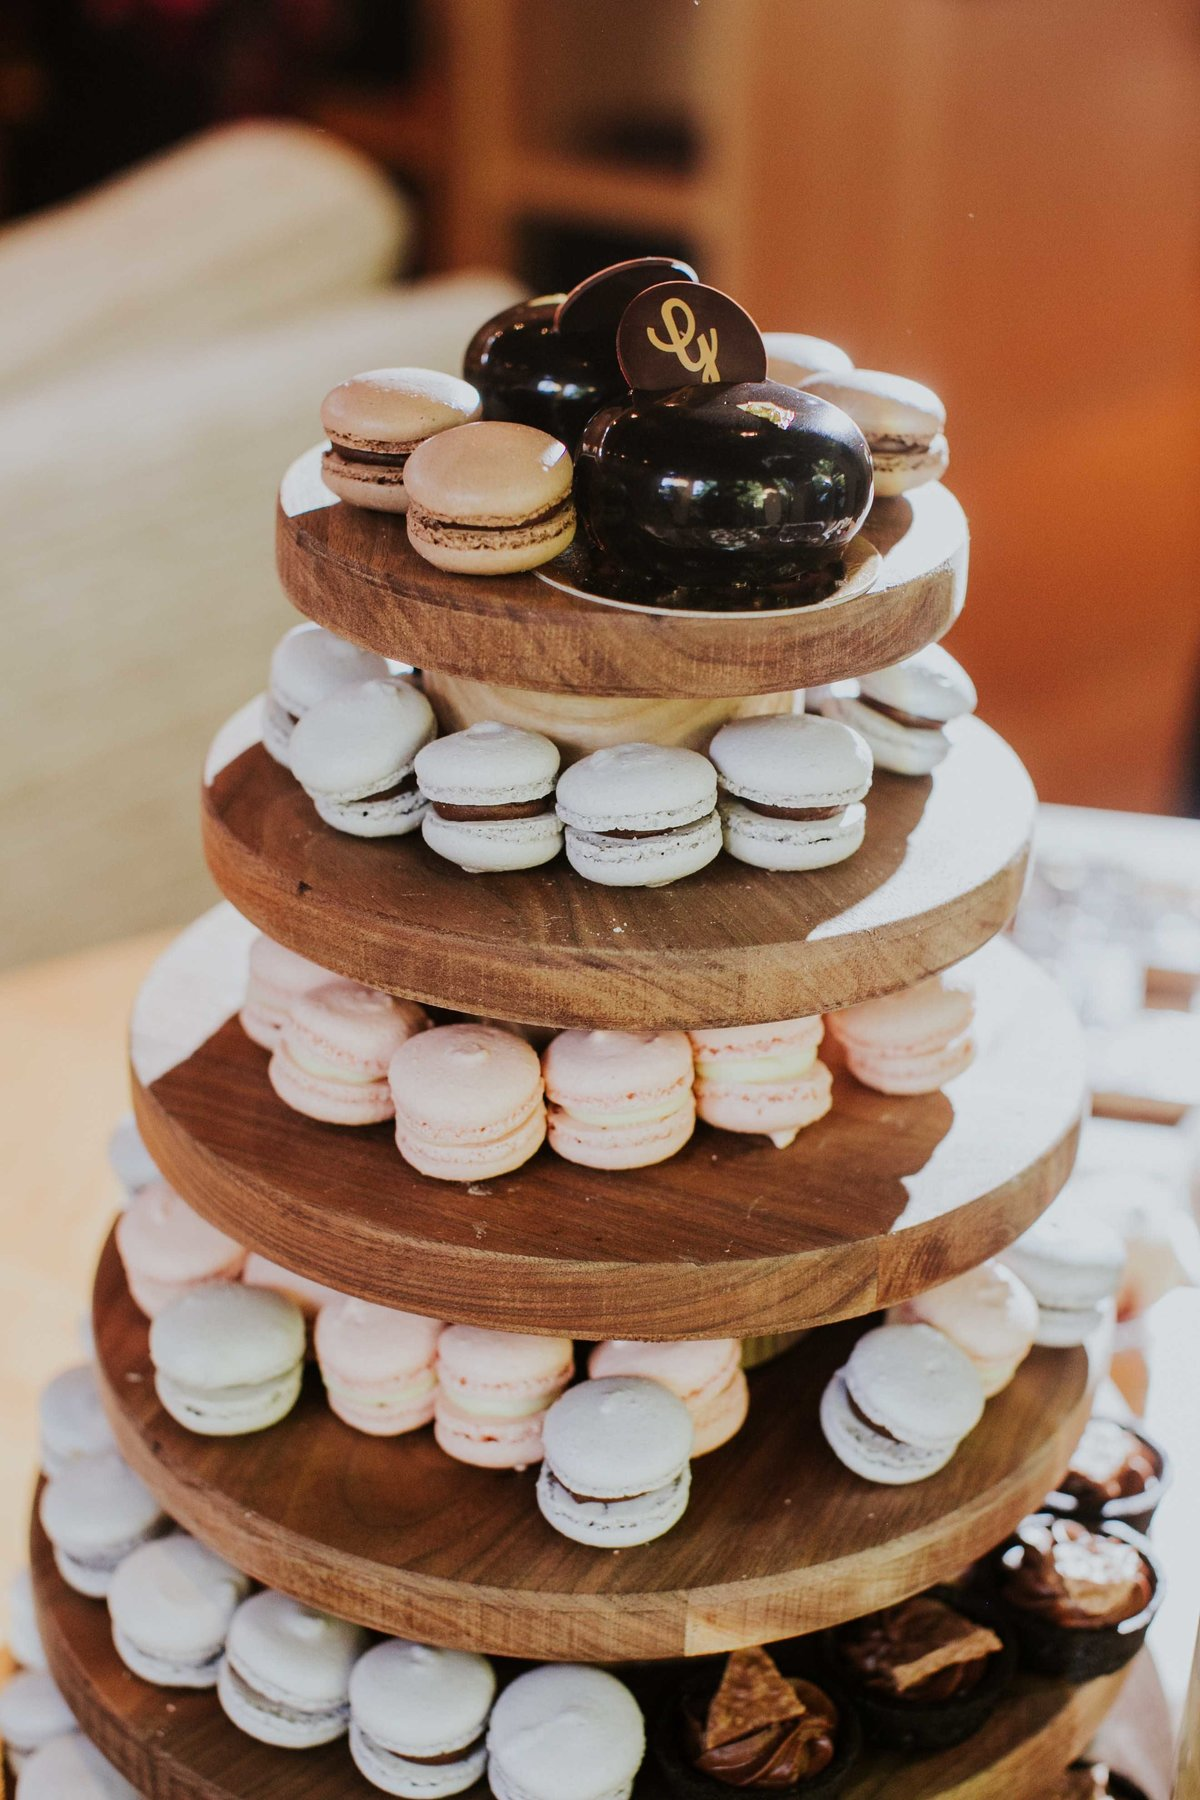 Gallery Pastry Shop macaroons sit on wooden tower at indianapolis backyard wedding